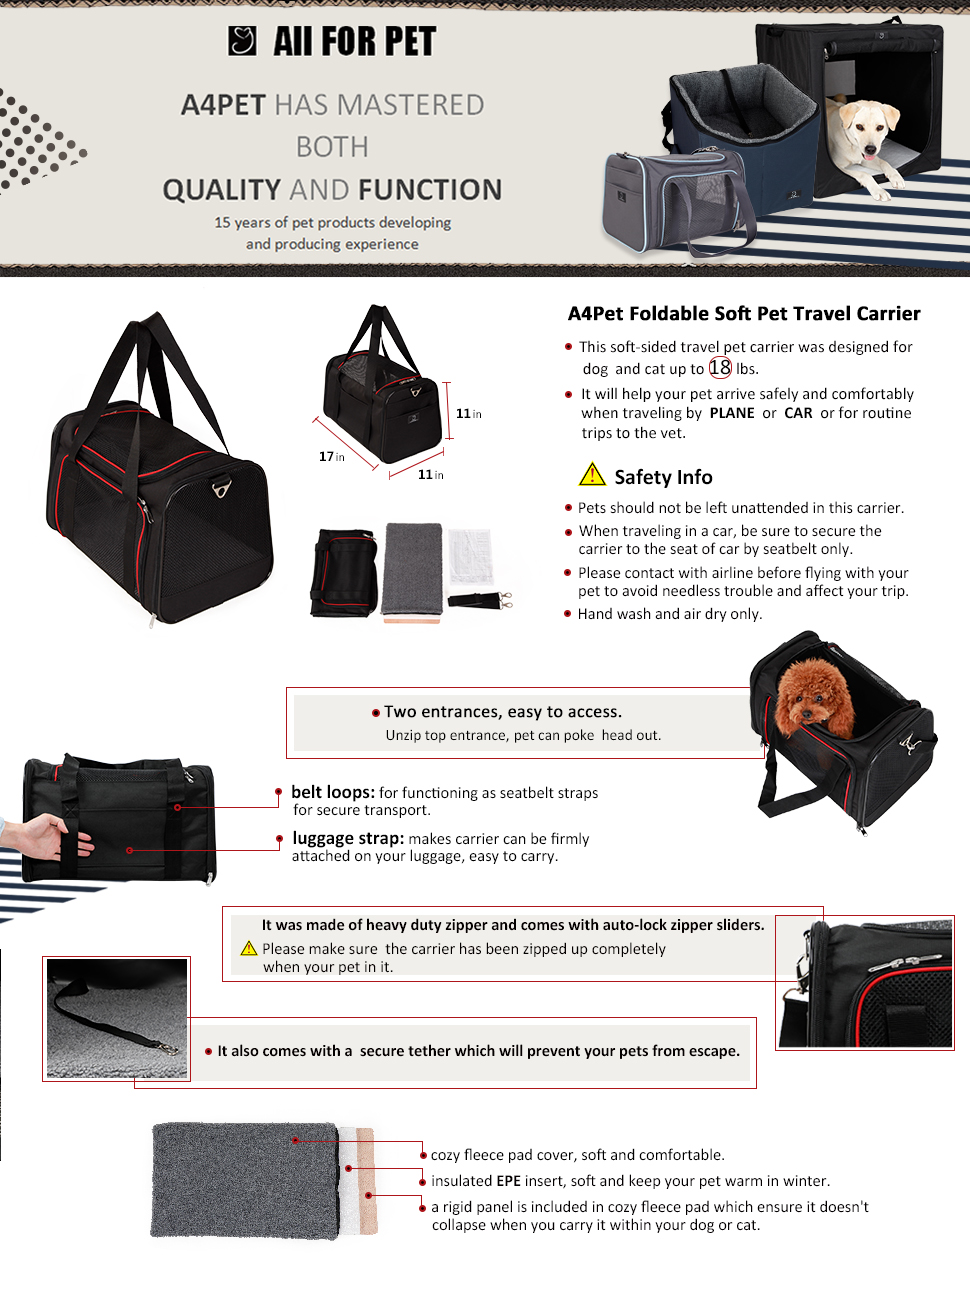 Collapsible Pet Travel Carrier, Review of A4Pet Collapsible Pet Travel Carrier for Medium Cat and Puppy